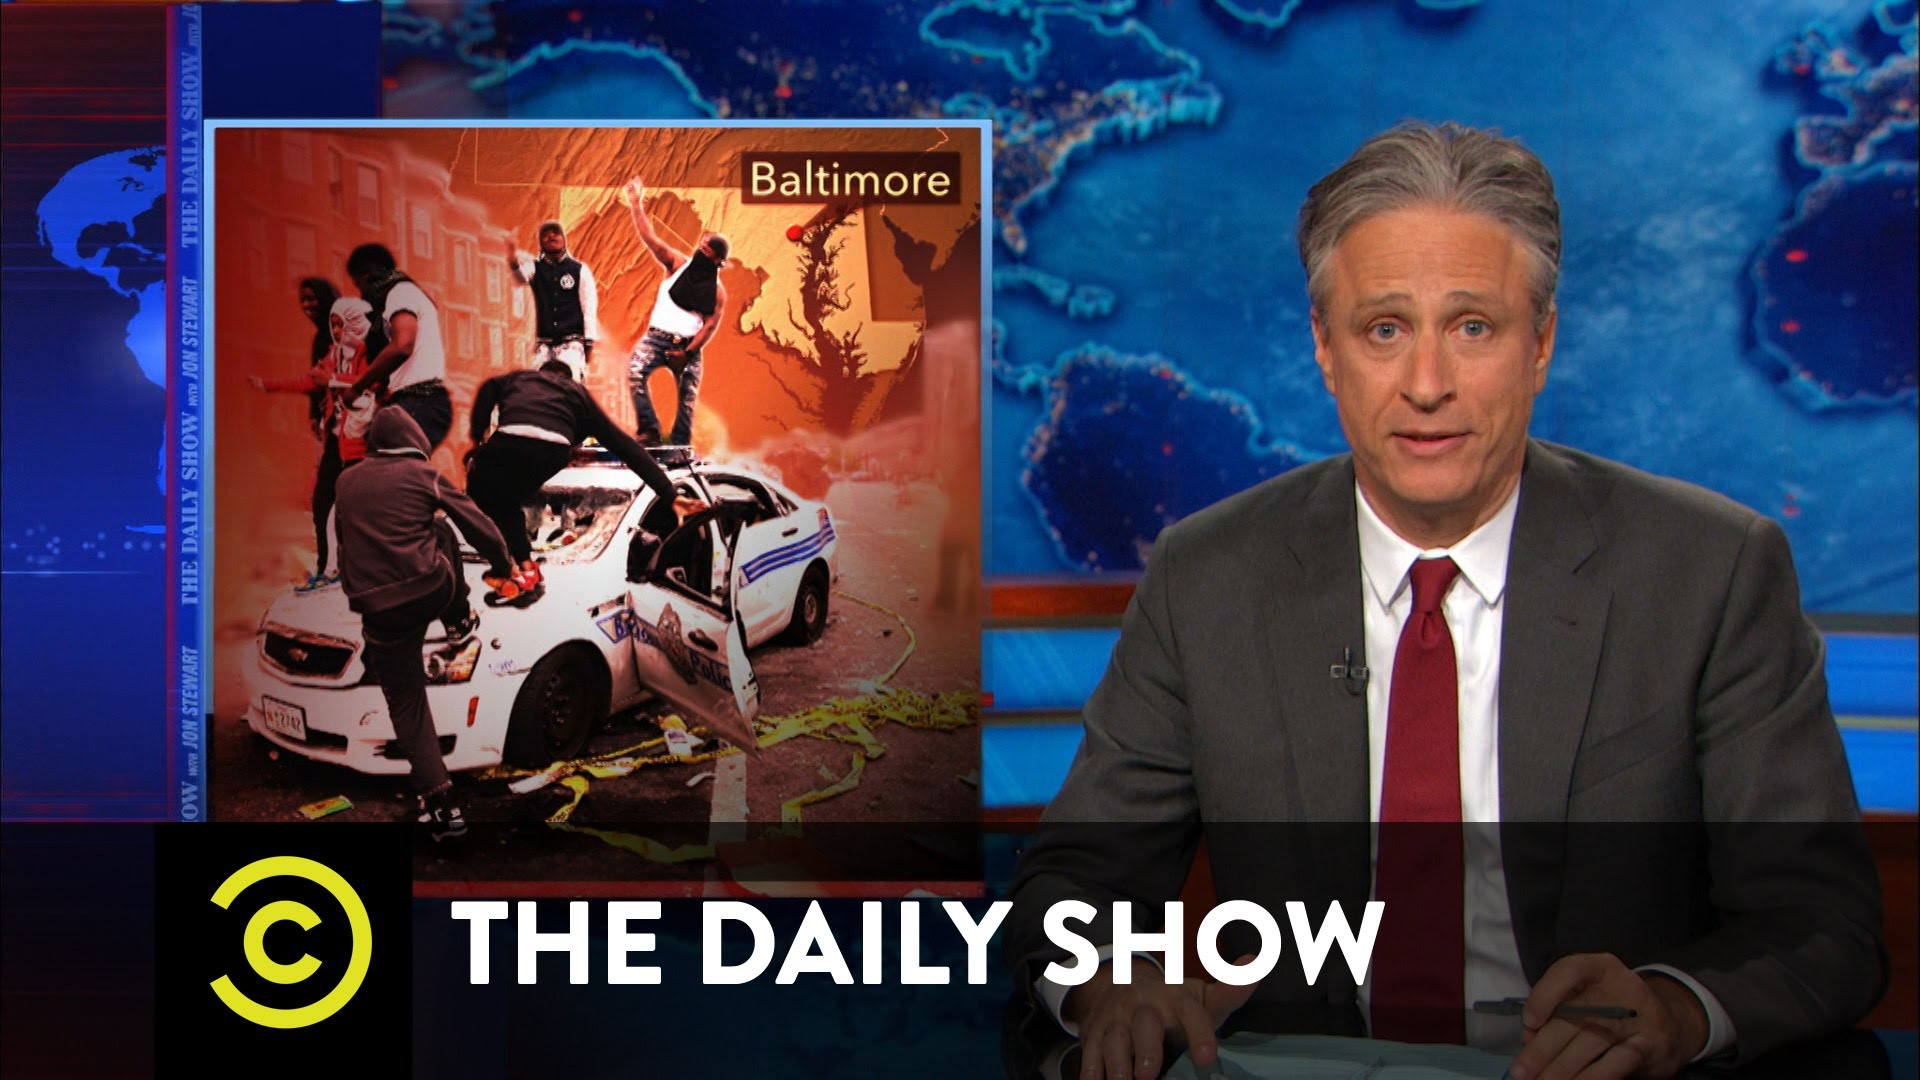 The Daily Show – Baltimore on Fire